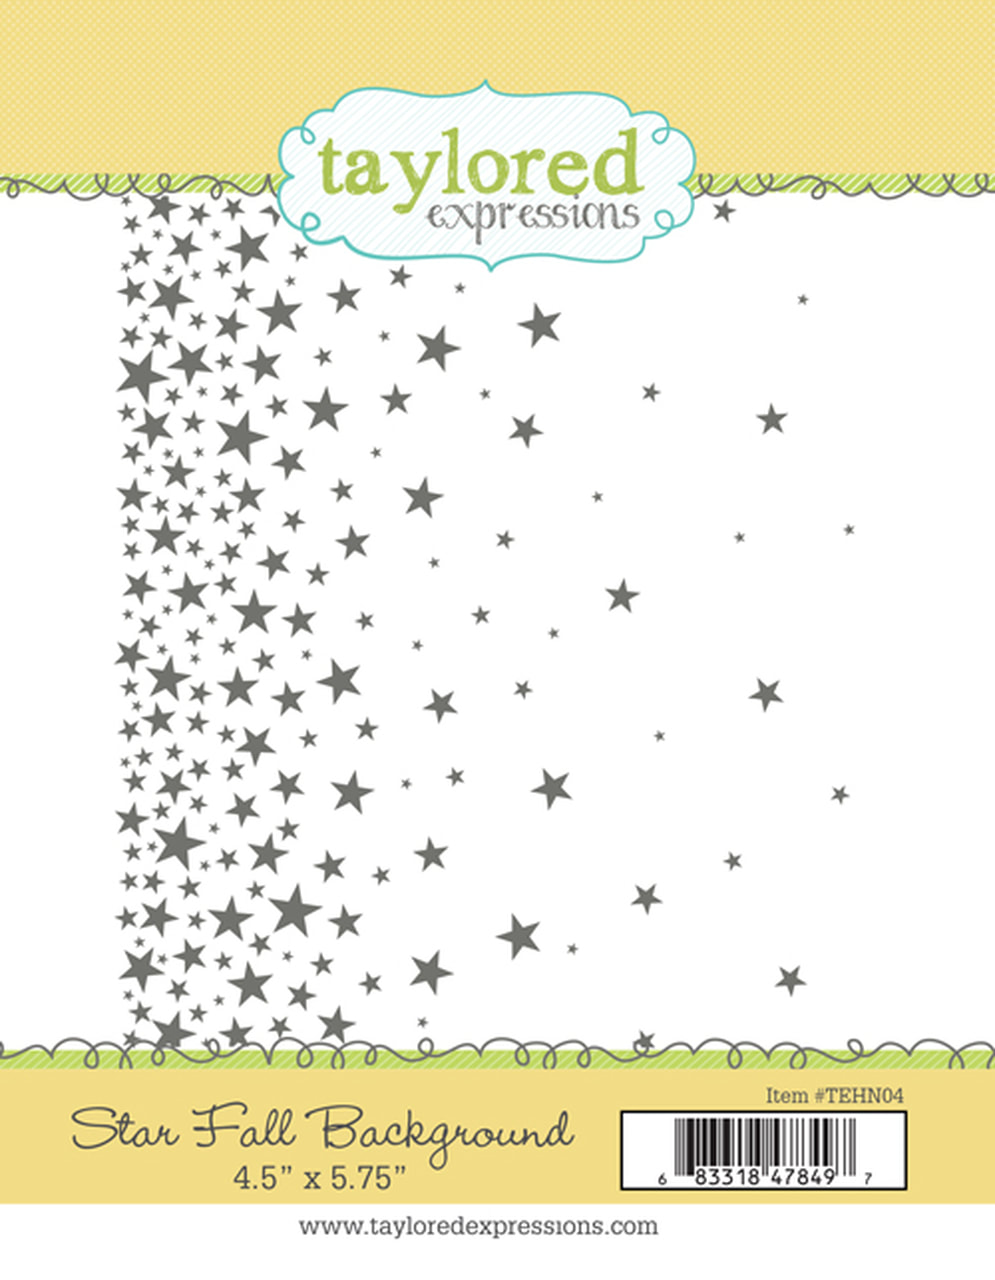 Taylored Expressions - Star Fall Background Stamp